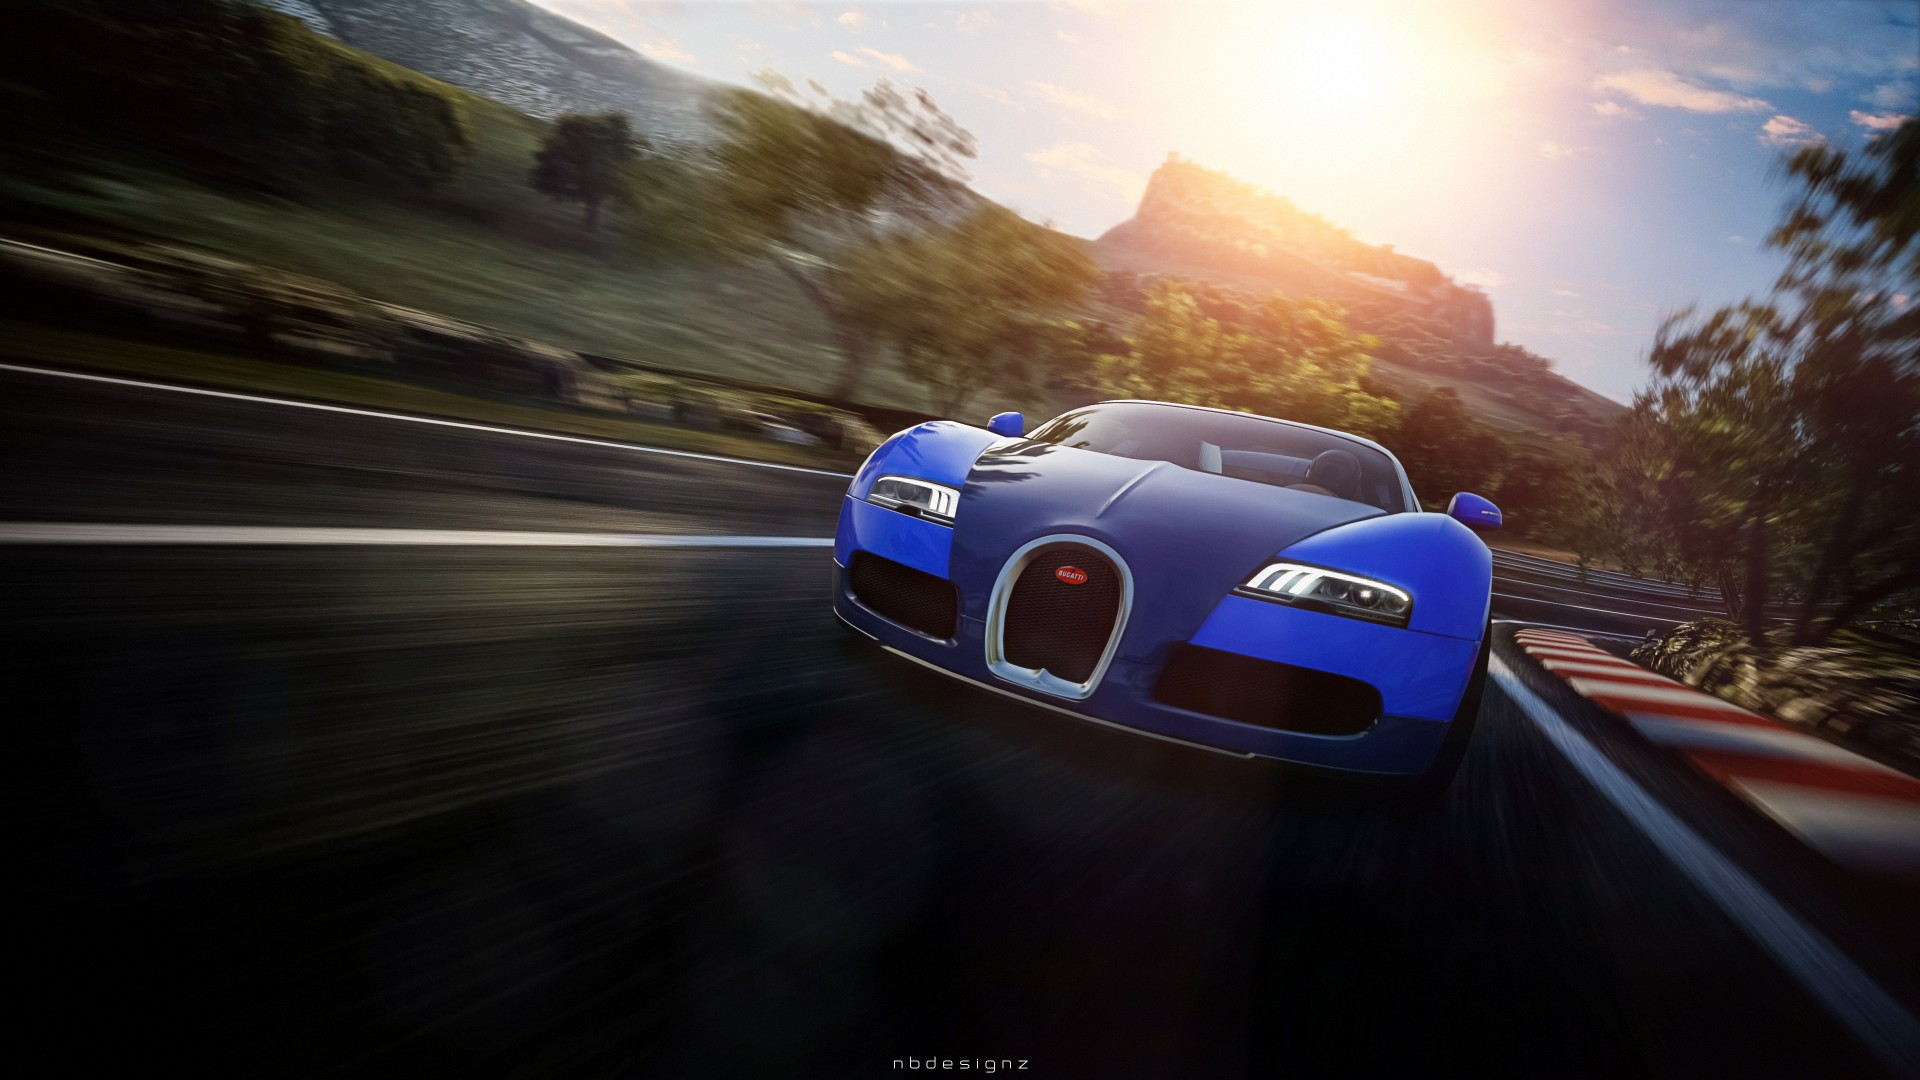 bugatti veyron eb 16 4 gran turismo 6 2015 wallpaper hd. Black Bedroom Furniture Sets. Home Design Ideas